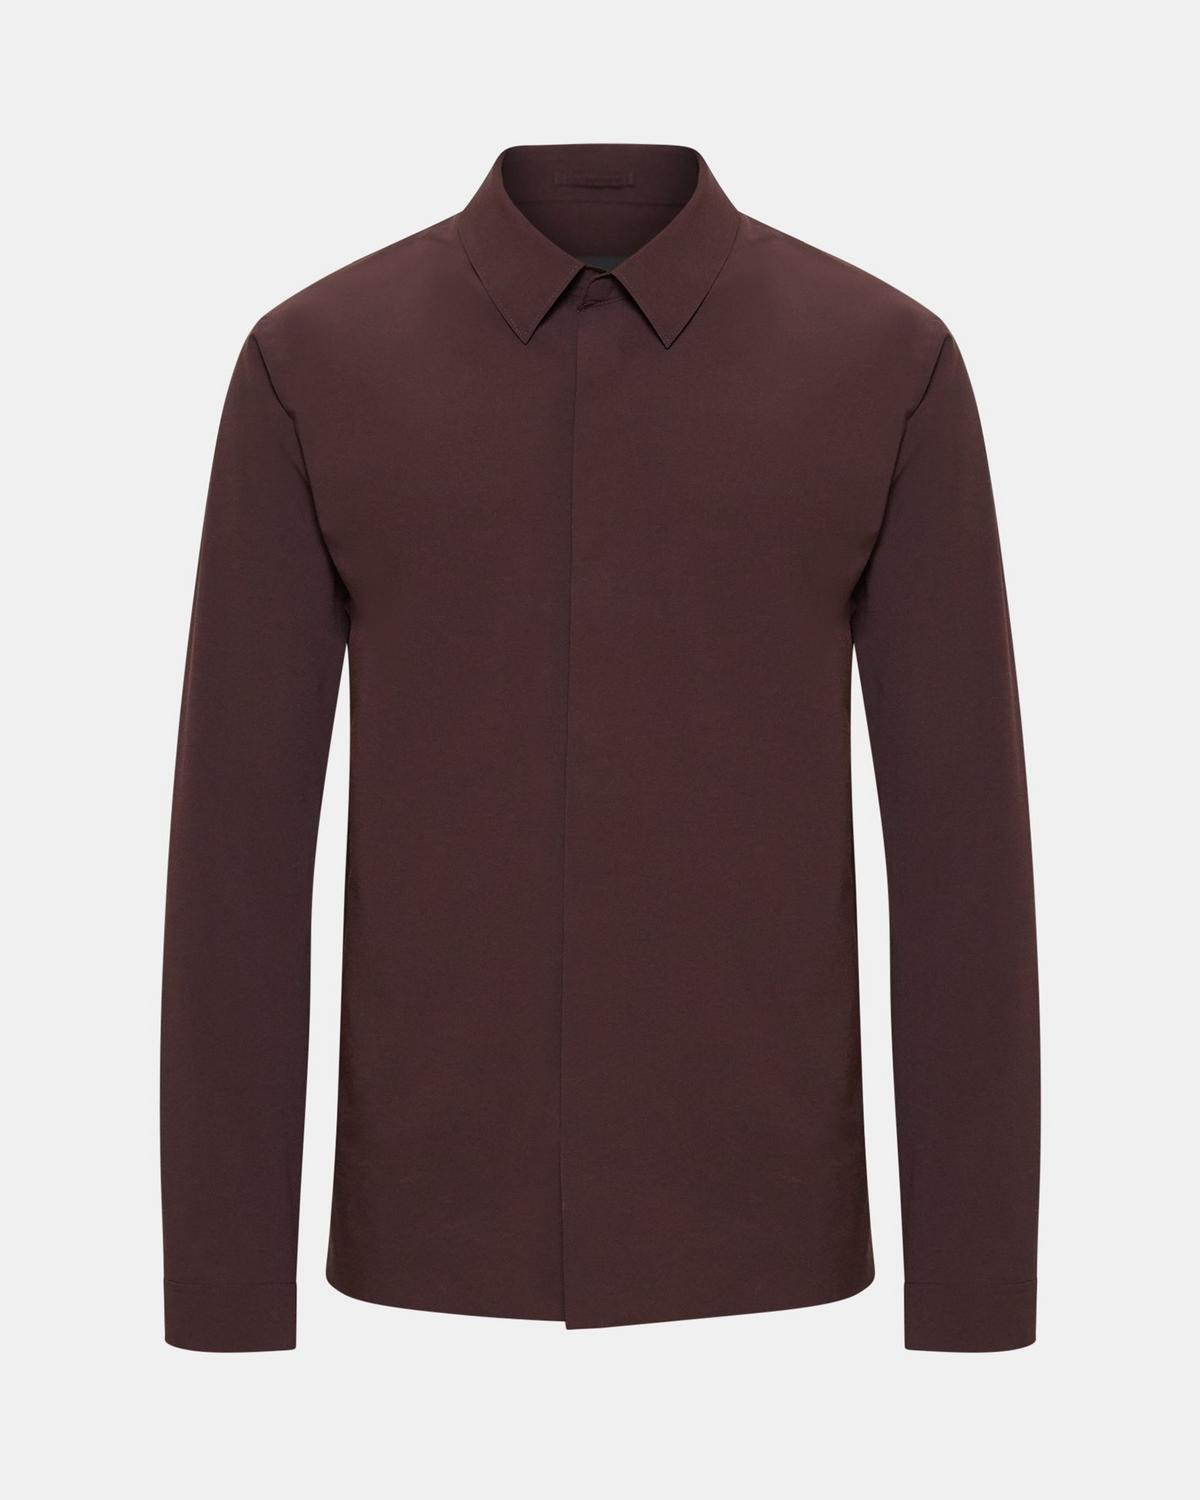 Mr Porter x Theory Bonded Shirt Jacket